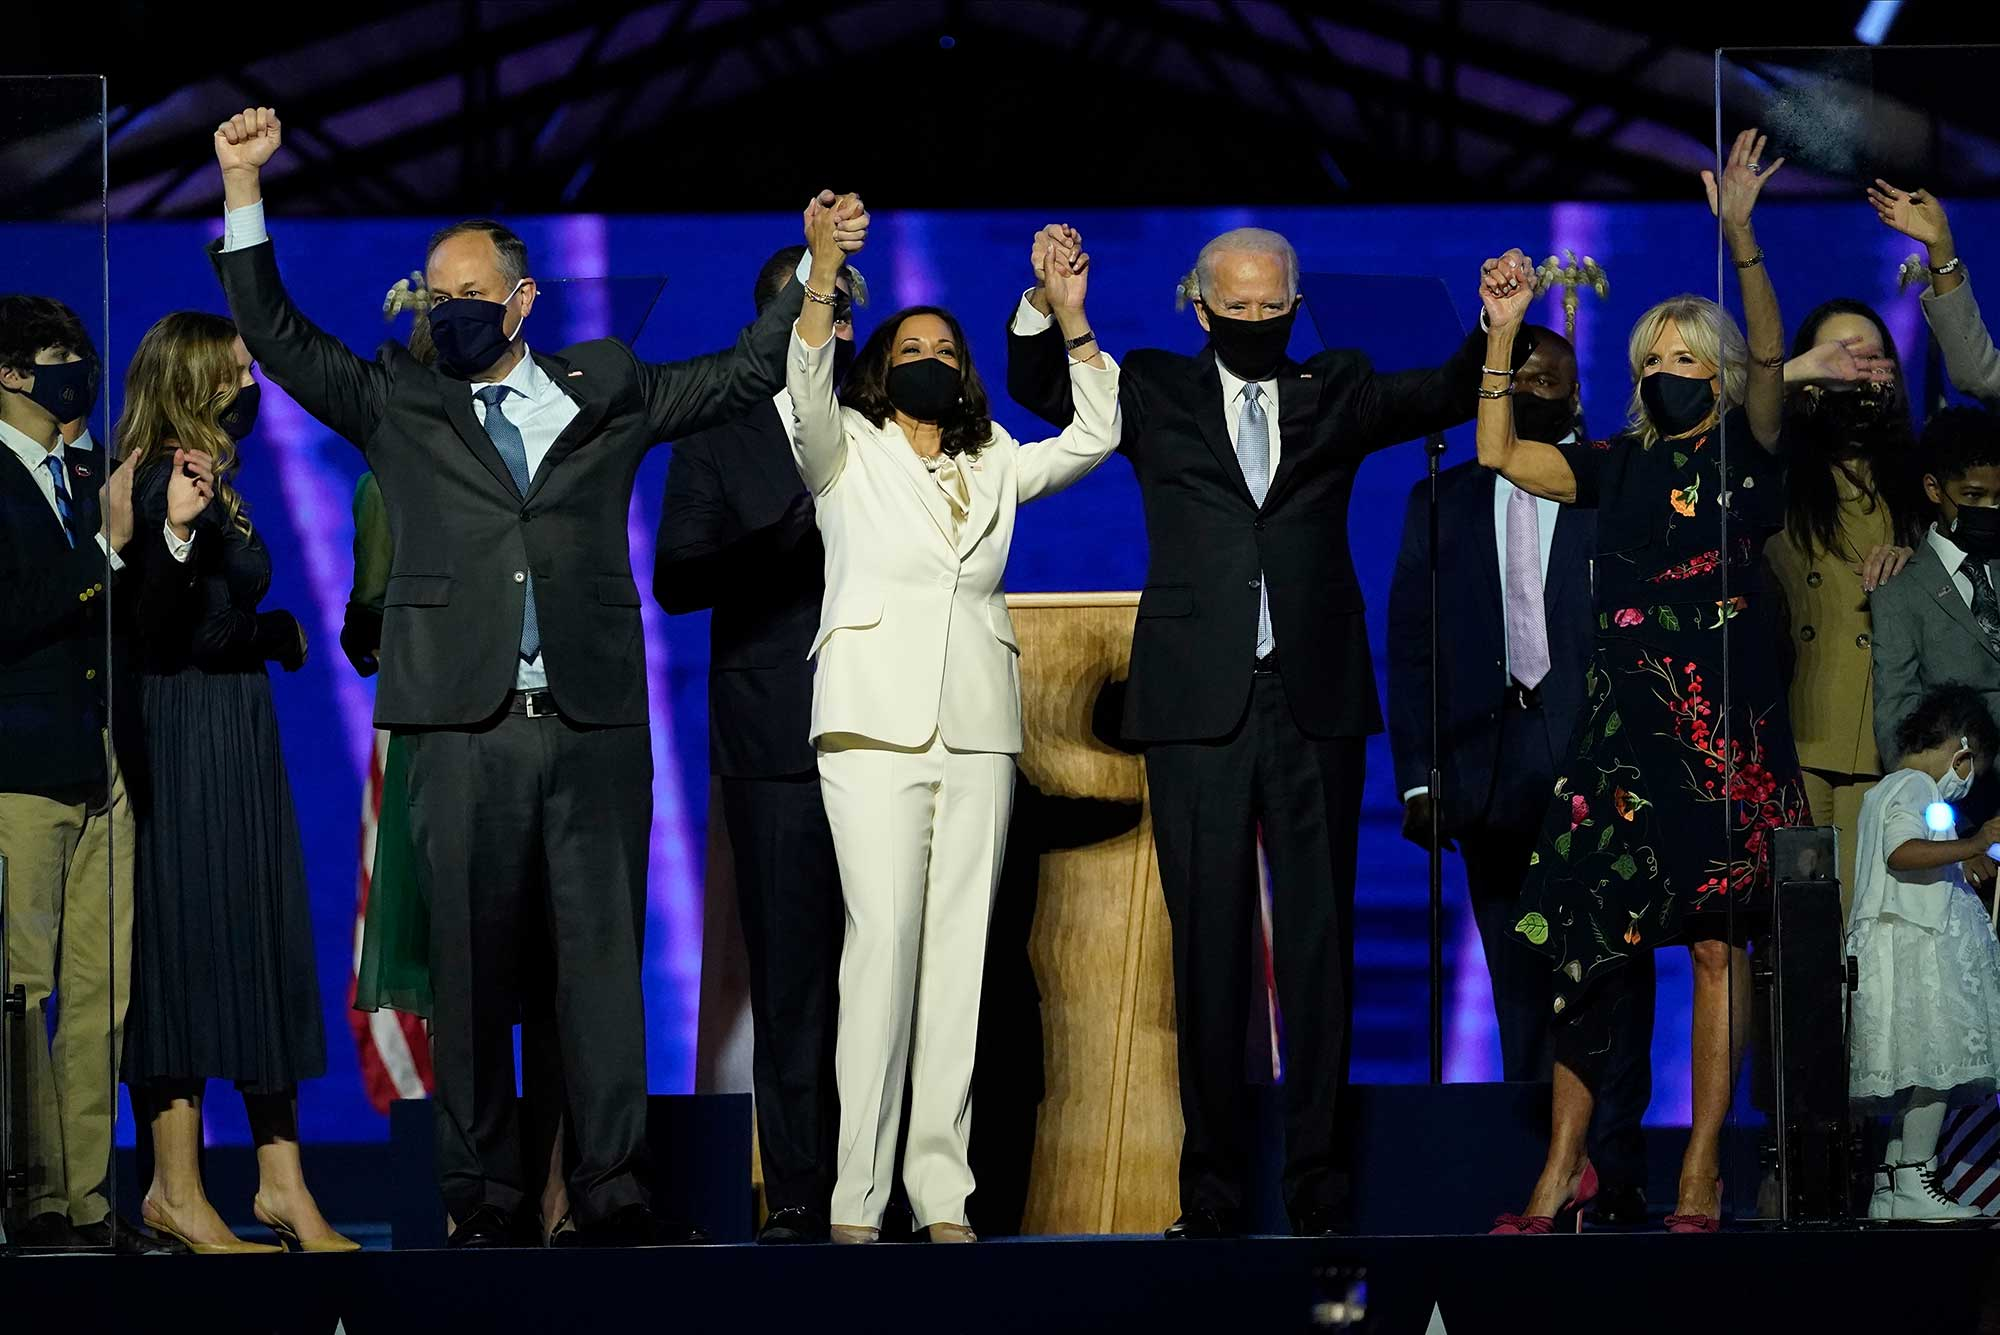 Doug Emhoff, Vice President-elect Kamala Harris, President-elect Joe Biden and his wife Jill Biden raise their hands in victory on stage together, Saturday, Nov. 7, 2020, in Wilmington, Del.